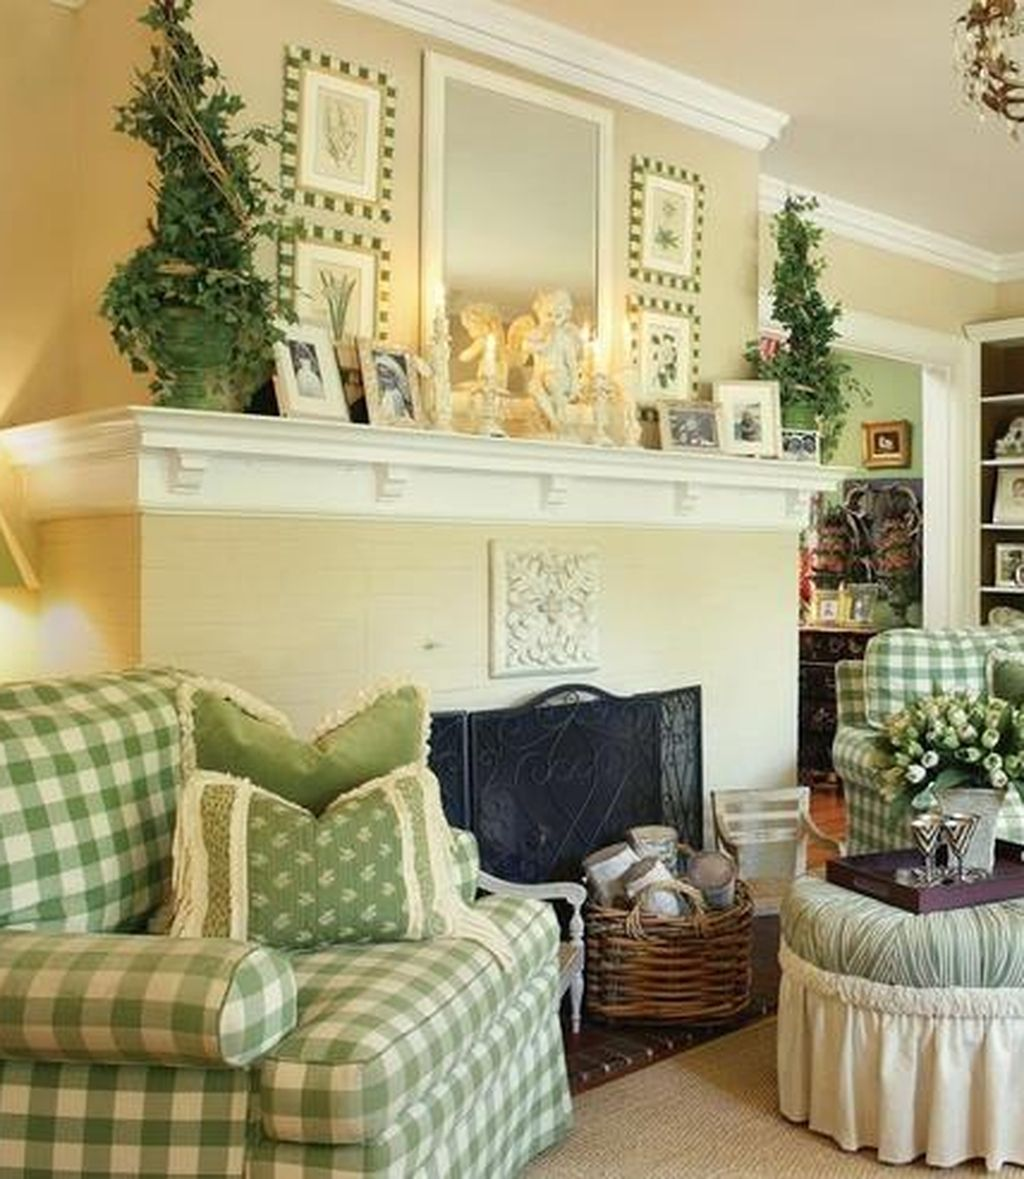 99 Cozy French Country Living Room Decor Ideas | French country ...